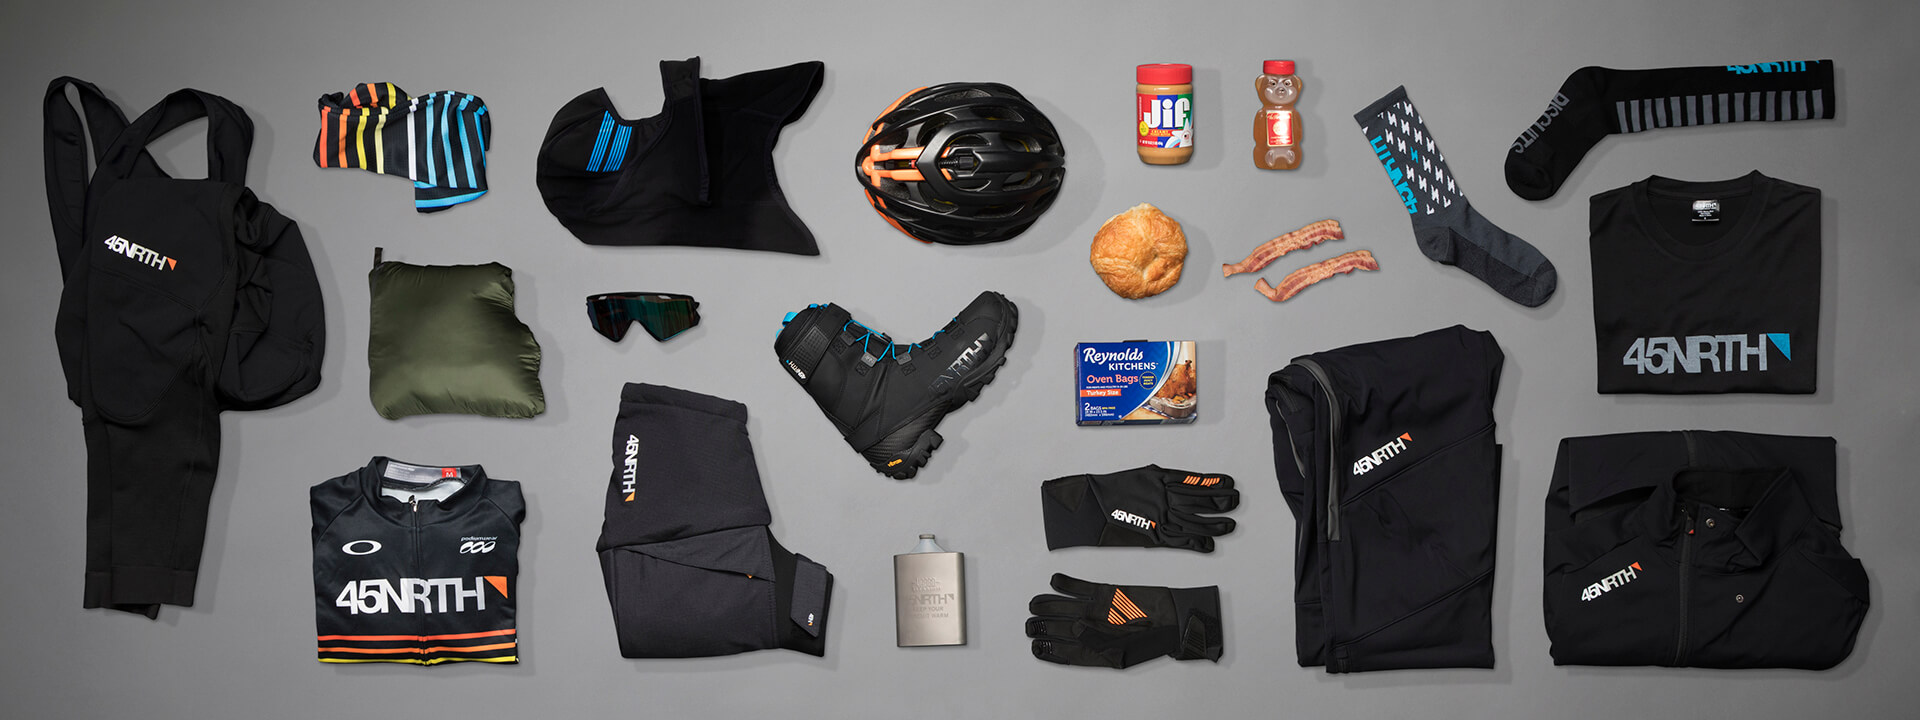 A group of 45NRTH products that cyclist should wear when riding in below zero weather